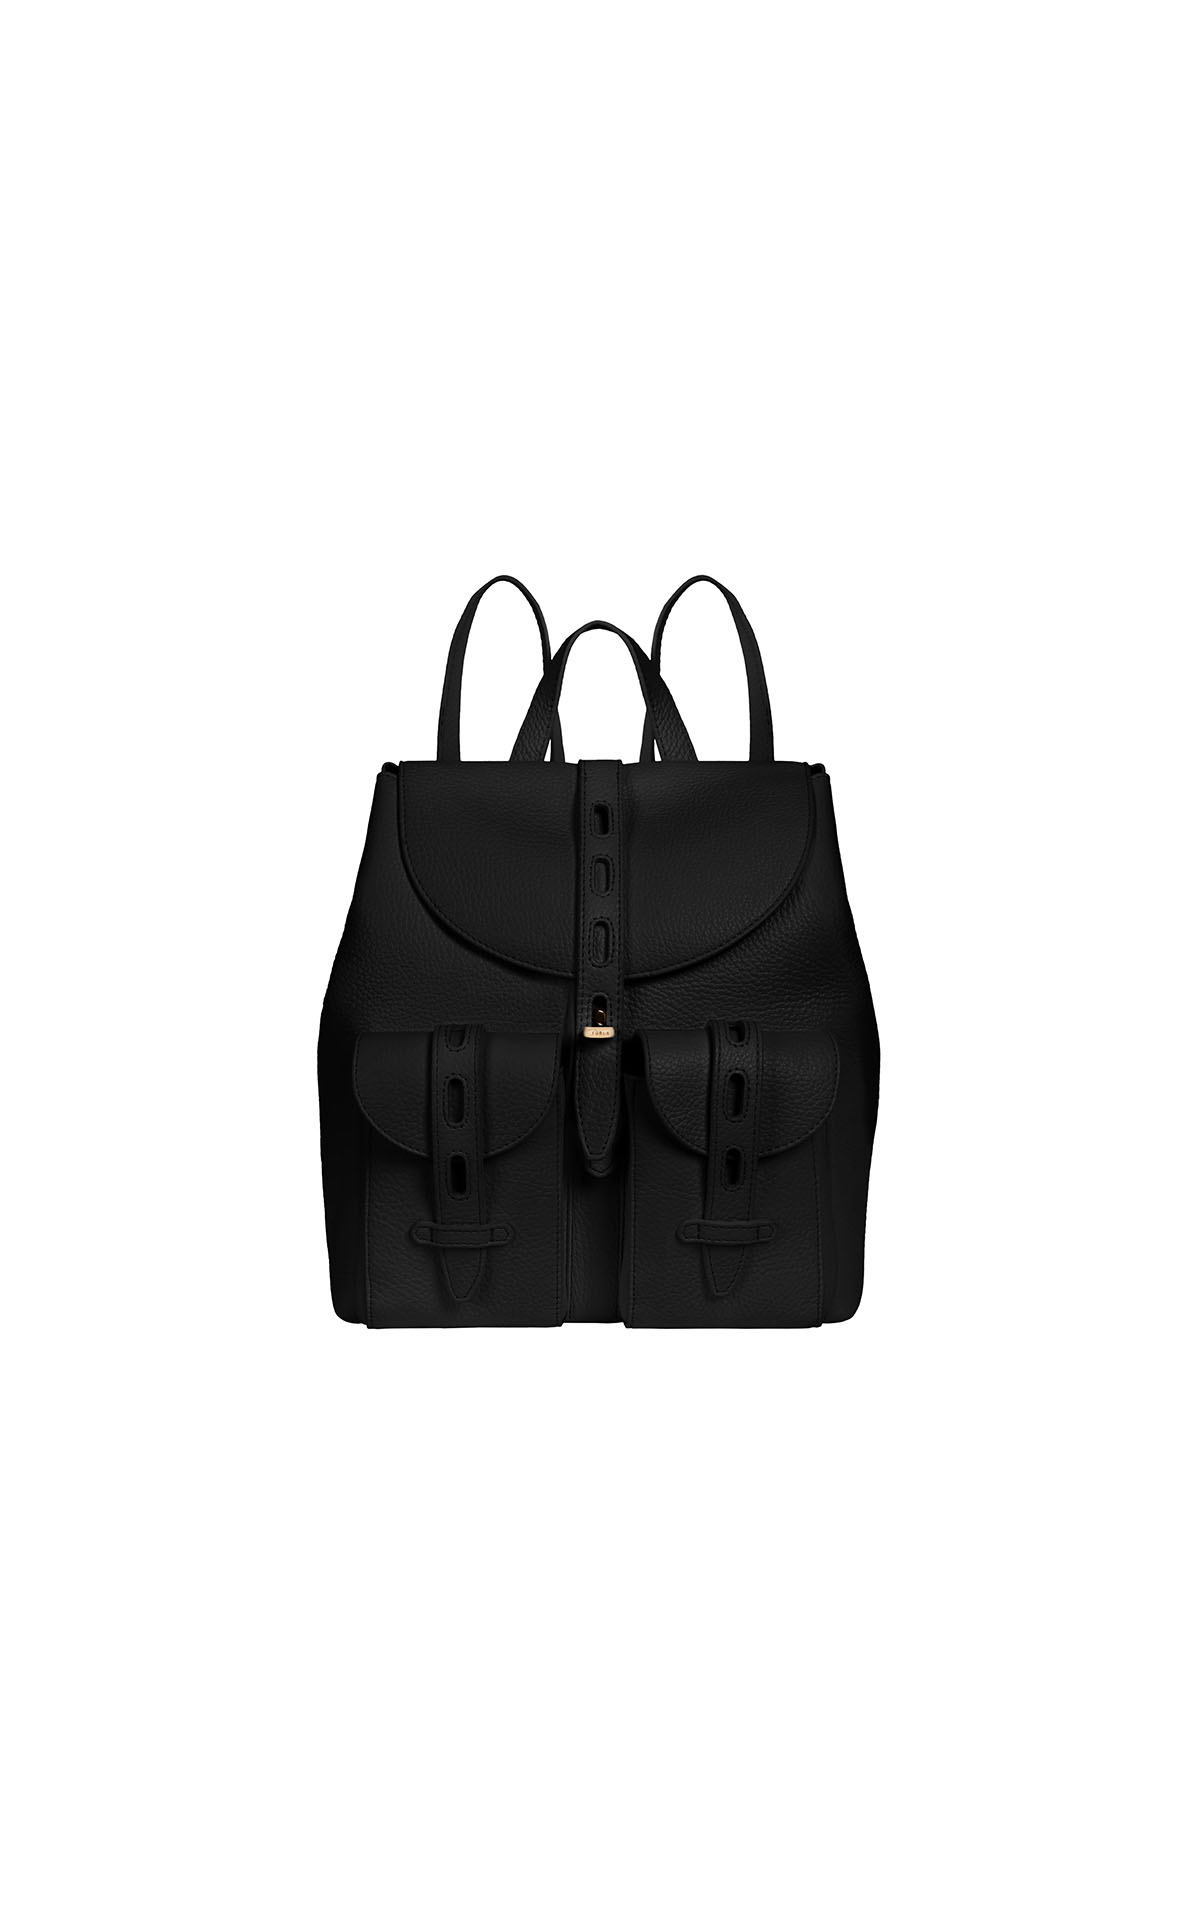 Furla net s backpack at the Bicester Village Shopping Collection